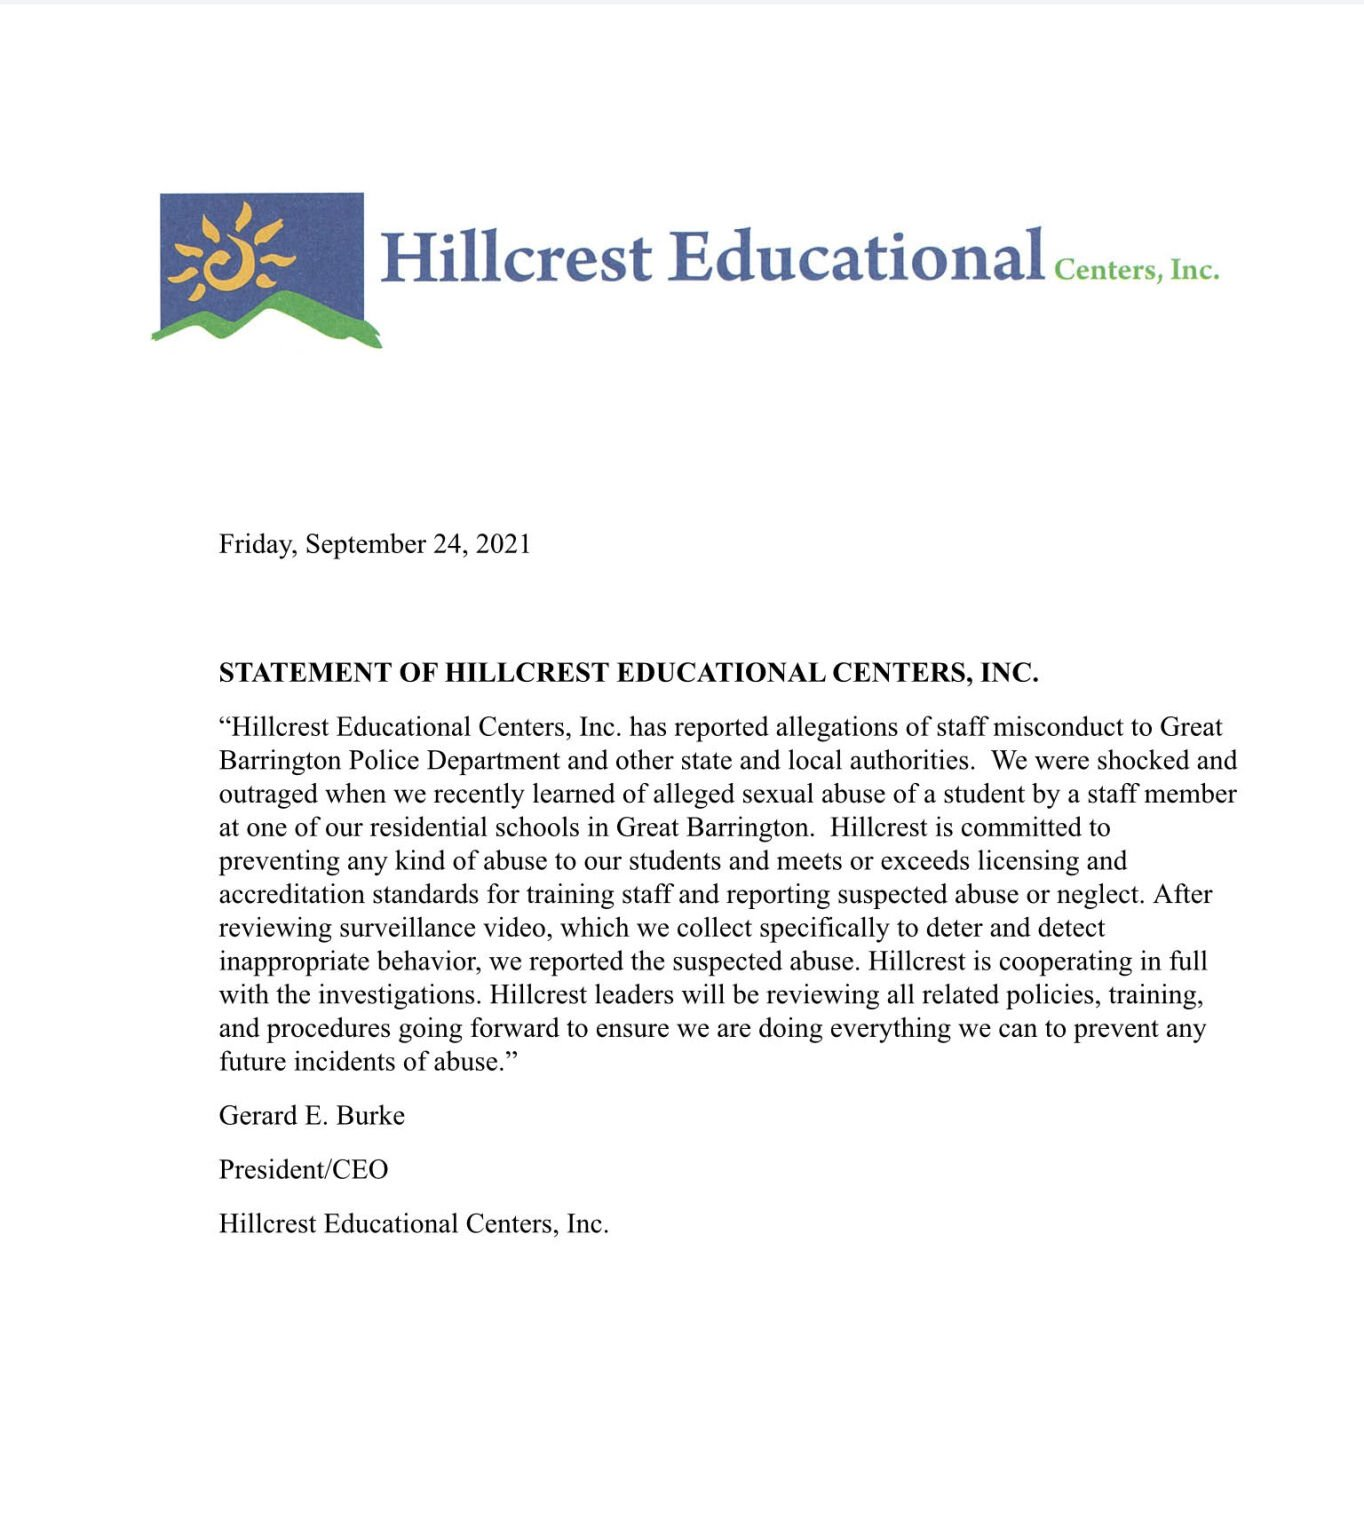 Statement from Hillcrest Educational Centers, Inc.